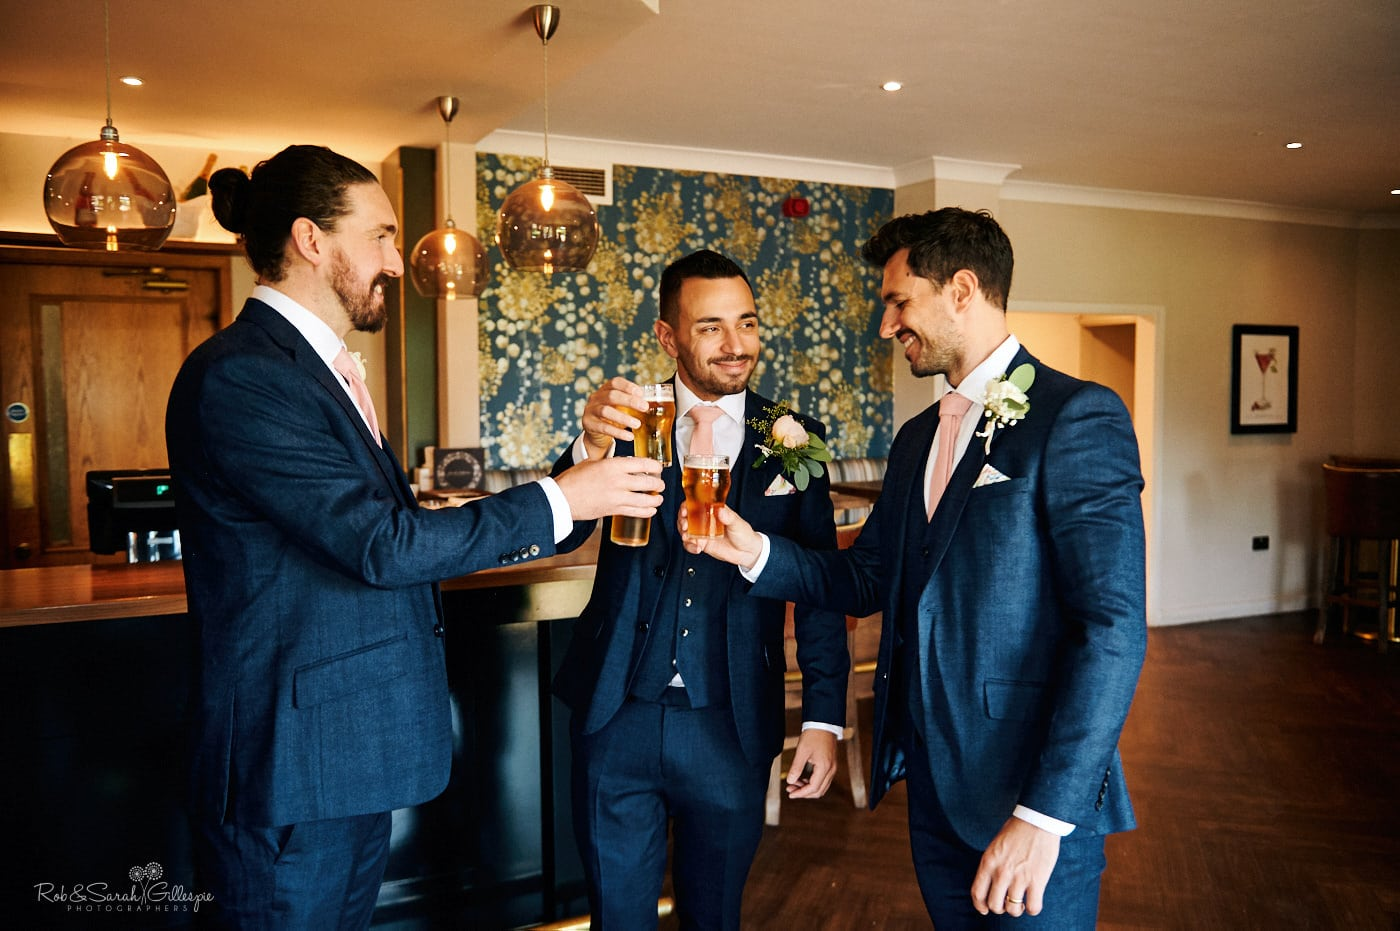 Groomsmen have a drink in bar before wedding